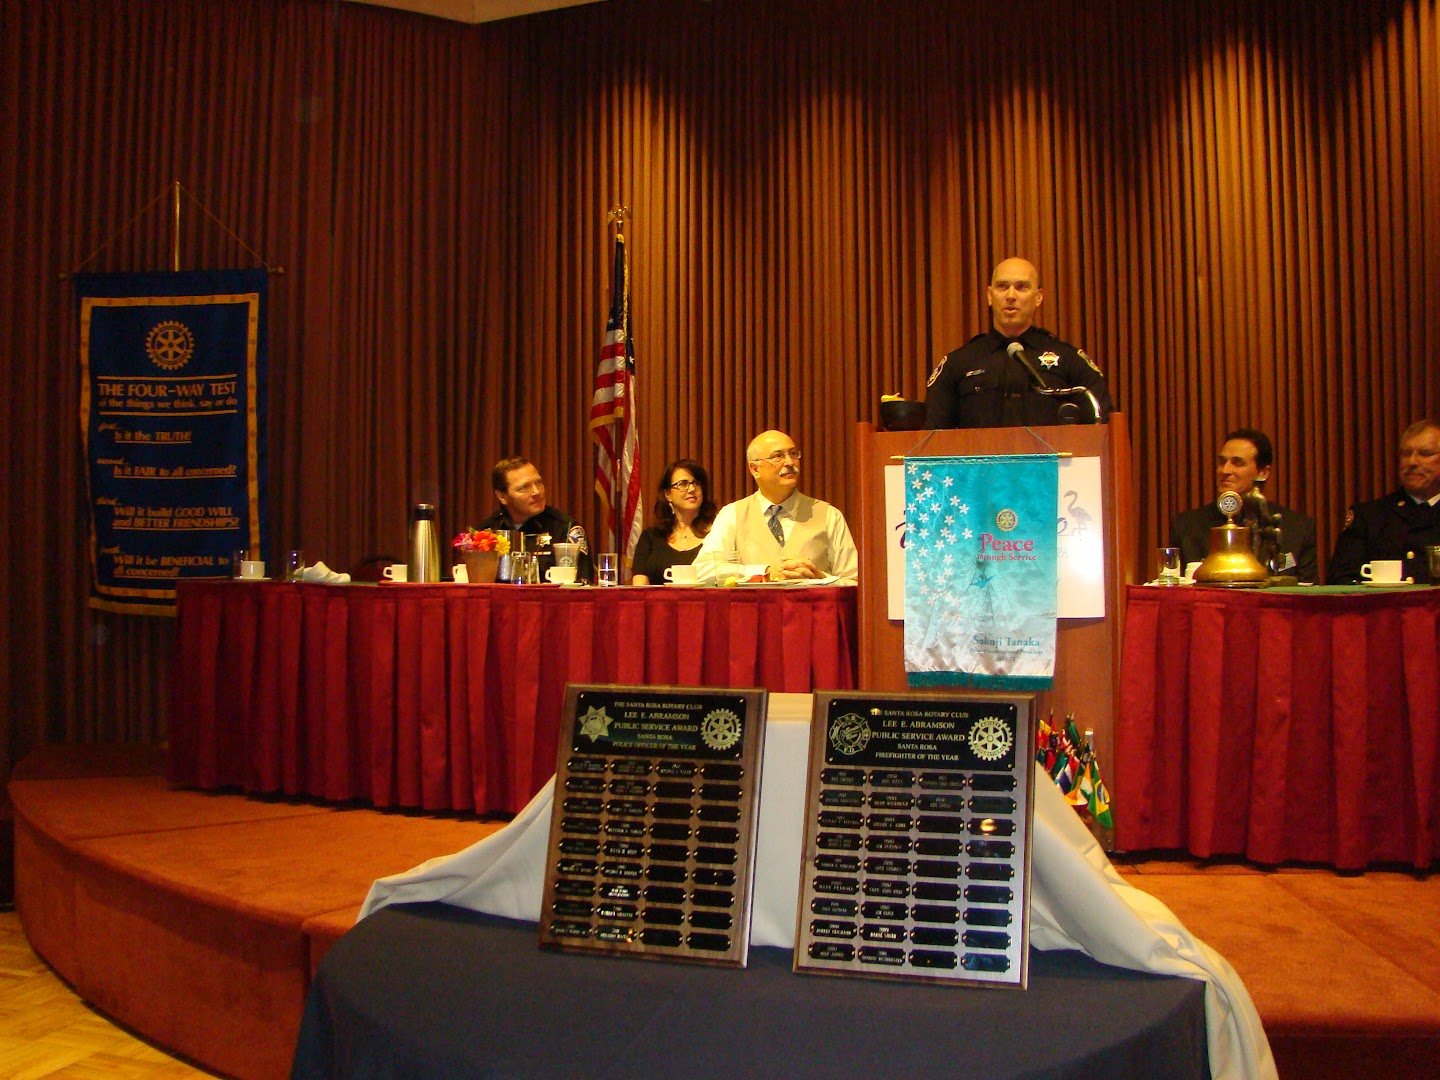 Law Enforcement Officer of the Year 2012 Michael C. Clark addresses the goup